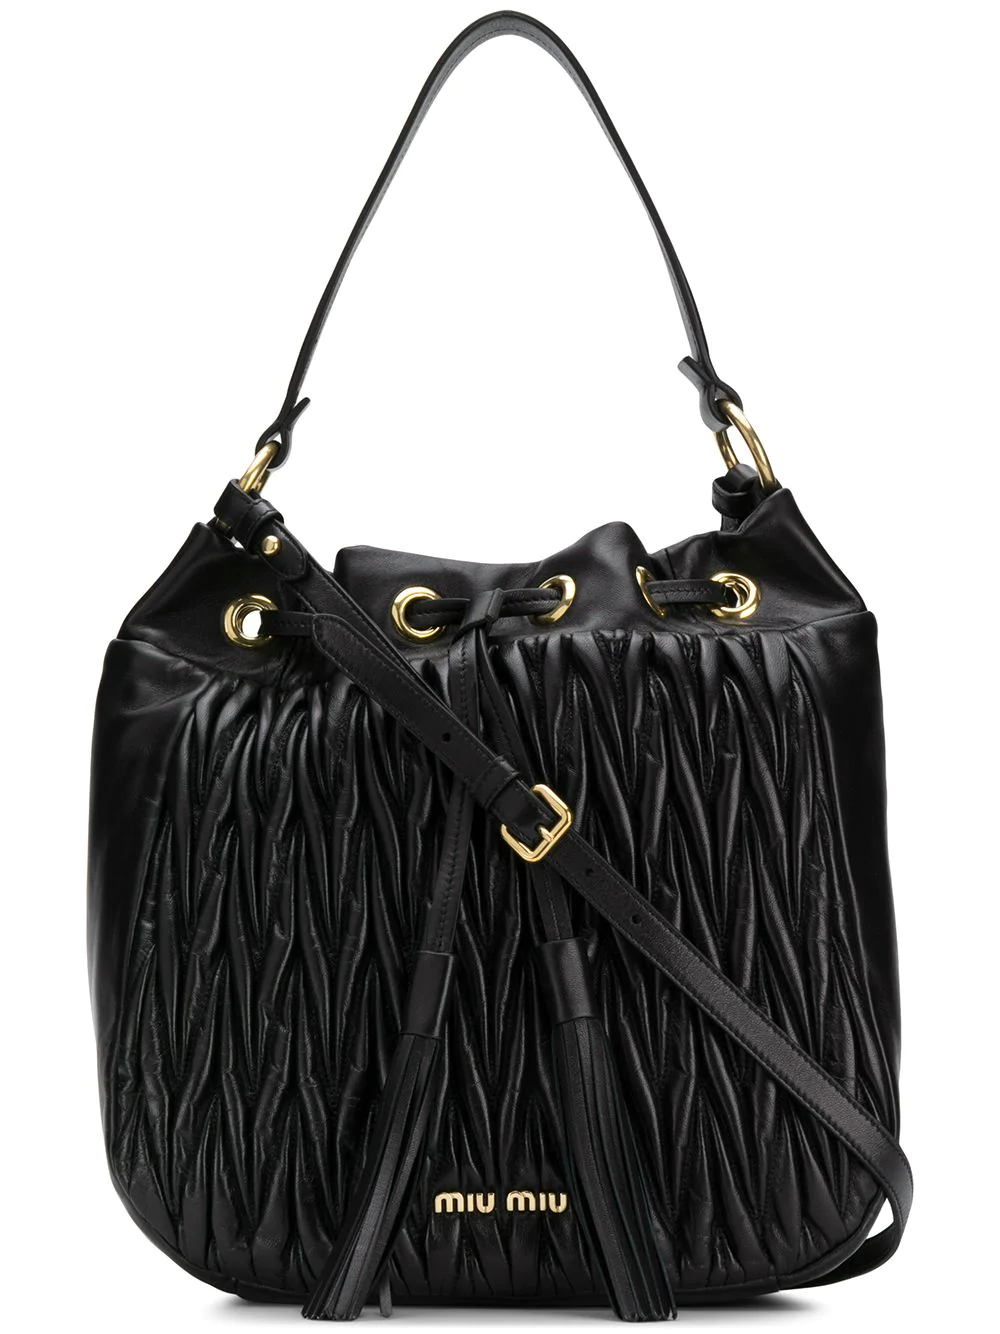 348dbe466acd Miu Miu Matelassé Shoulder Bag - Black